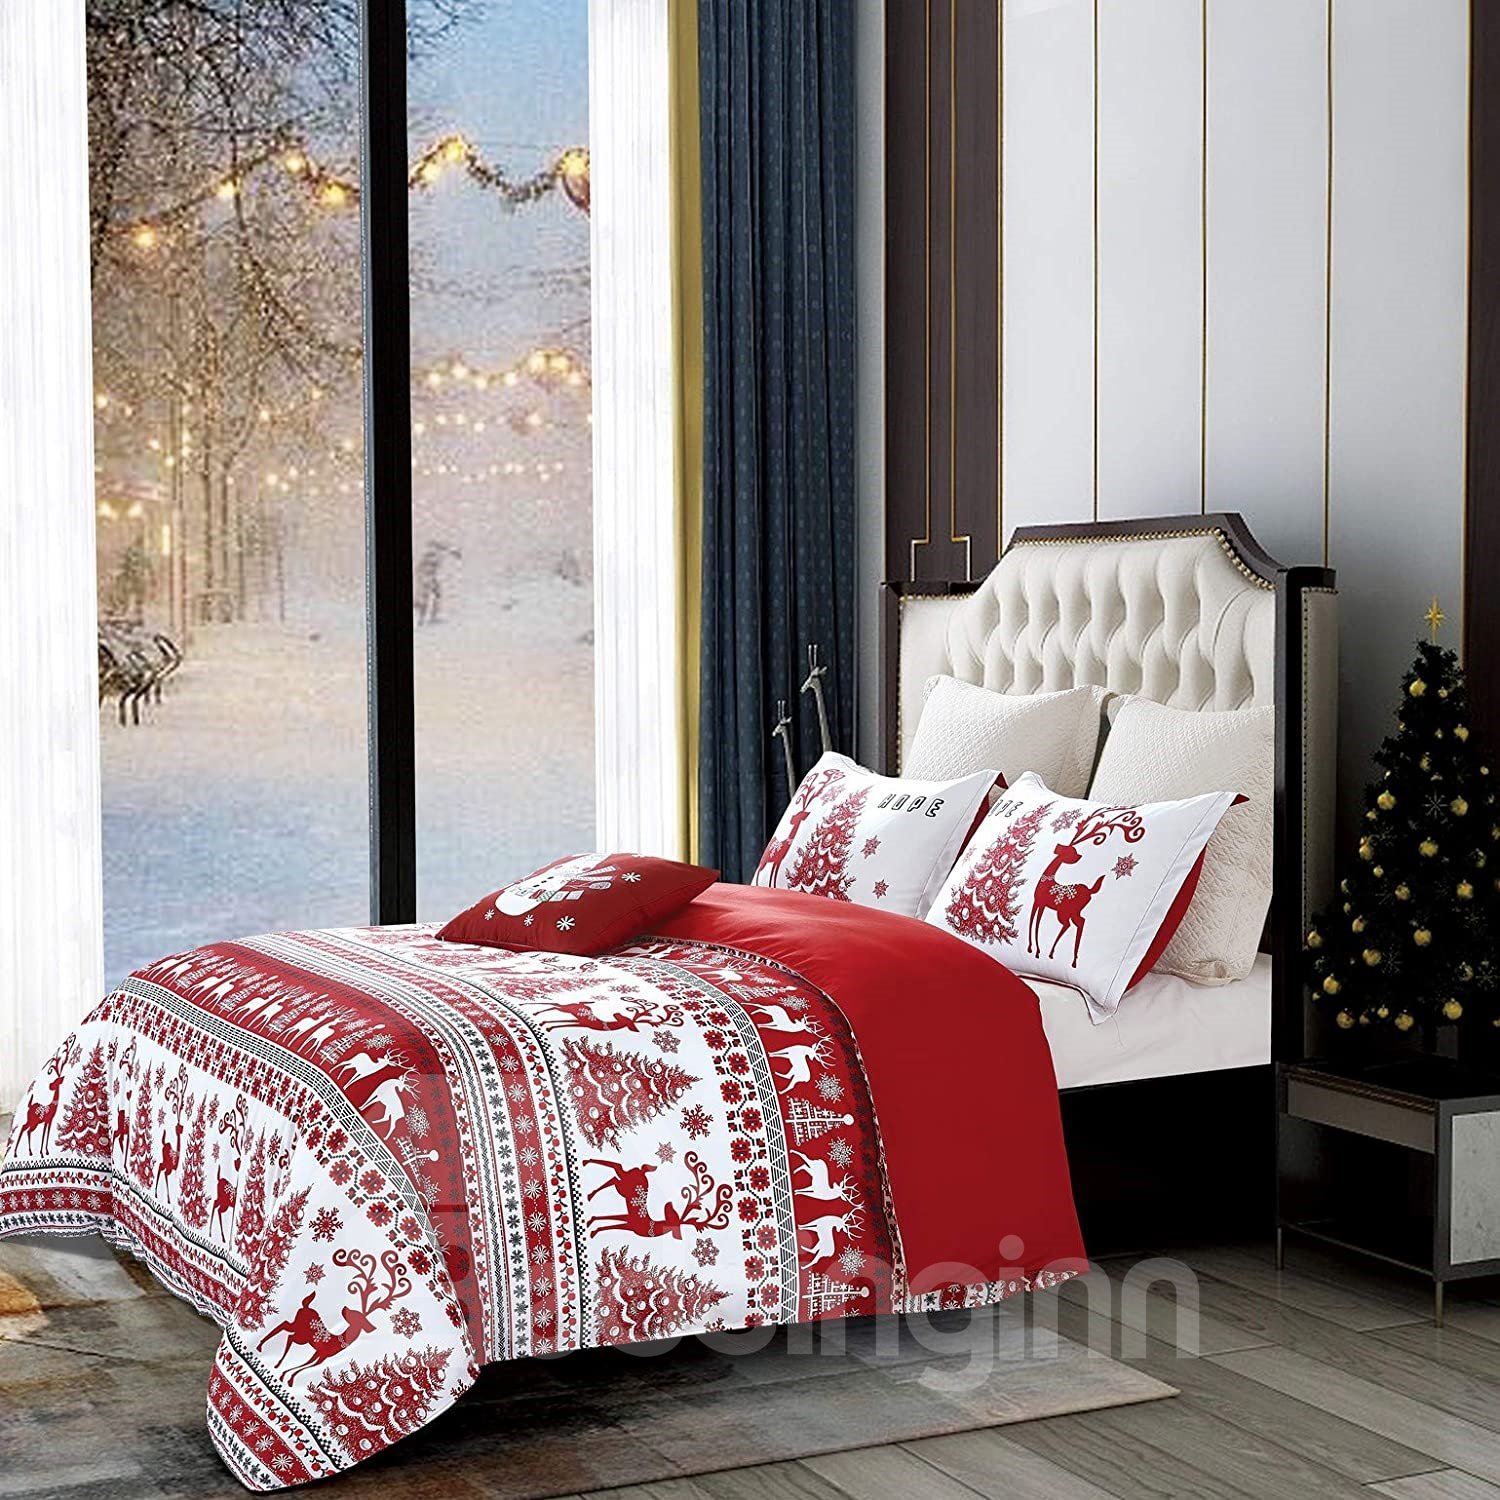 Christmas Trees and Reindeer Pattern Red Polyester 4-Piece Bedding Sets/Duvet Cover